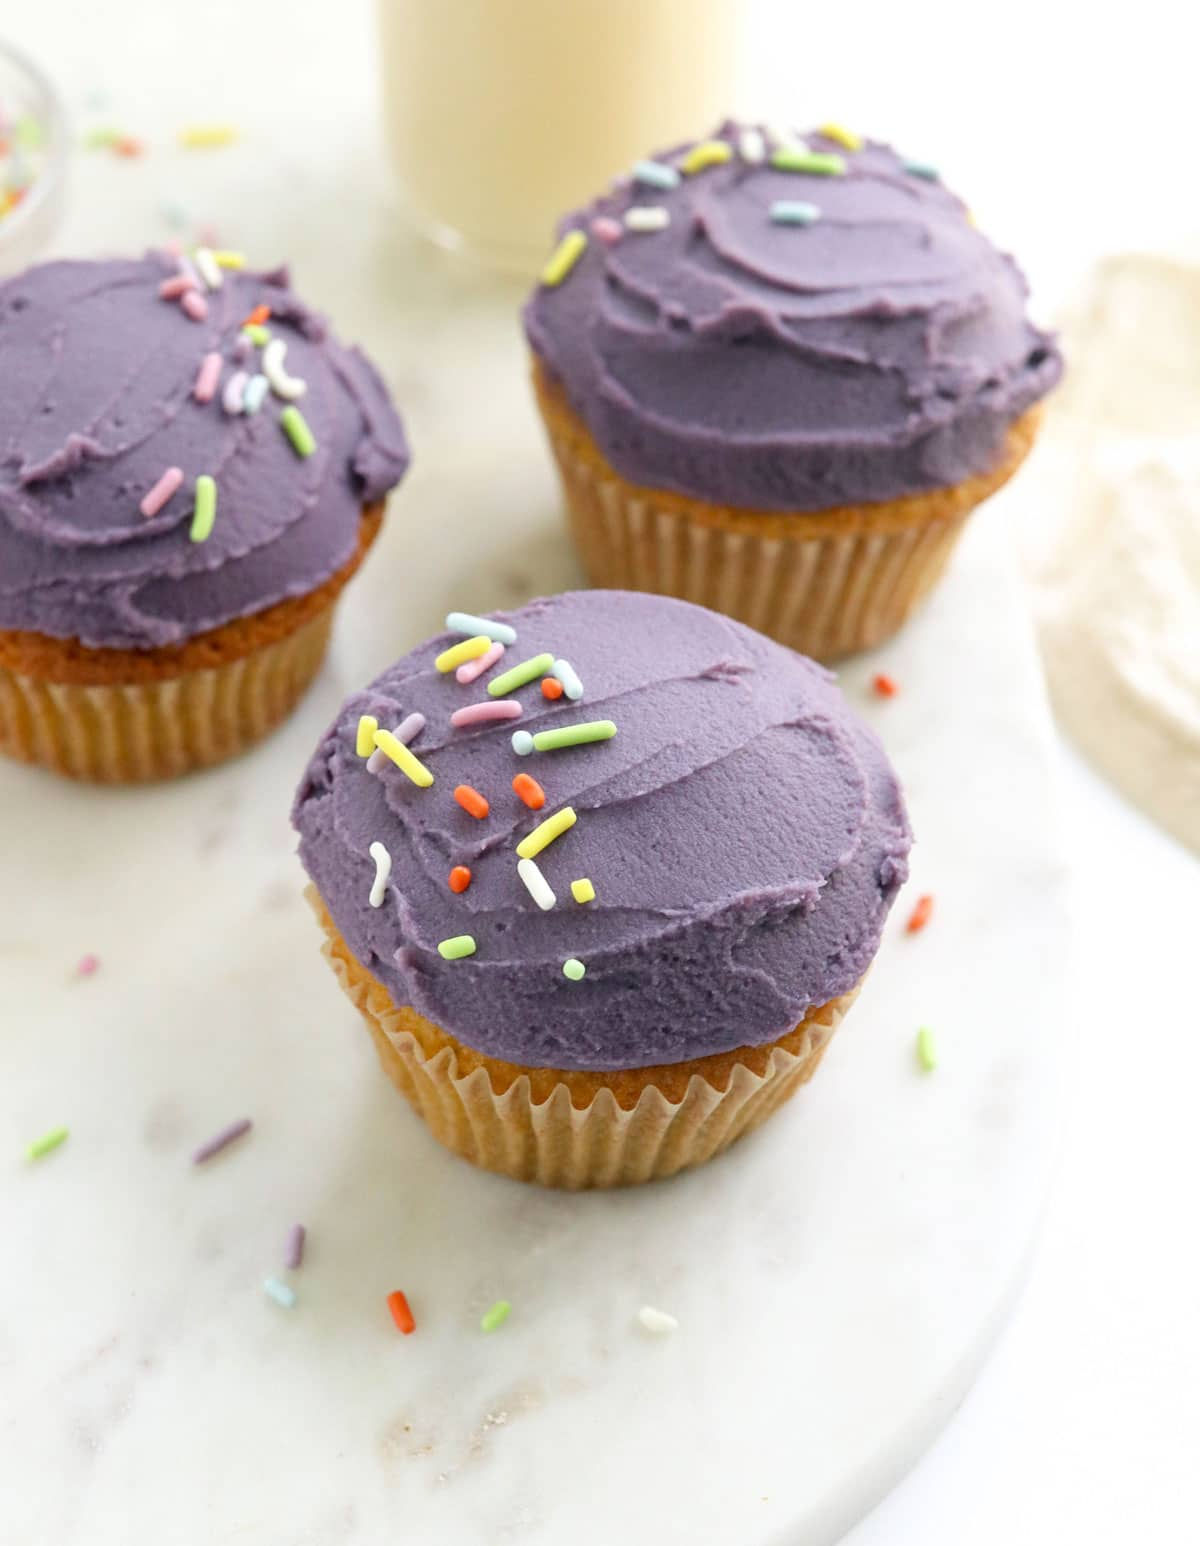 purple sweet potato frosting on cupcakes with sprinkles